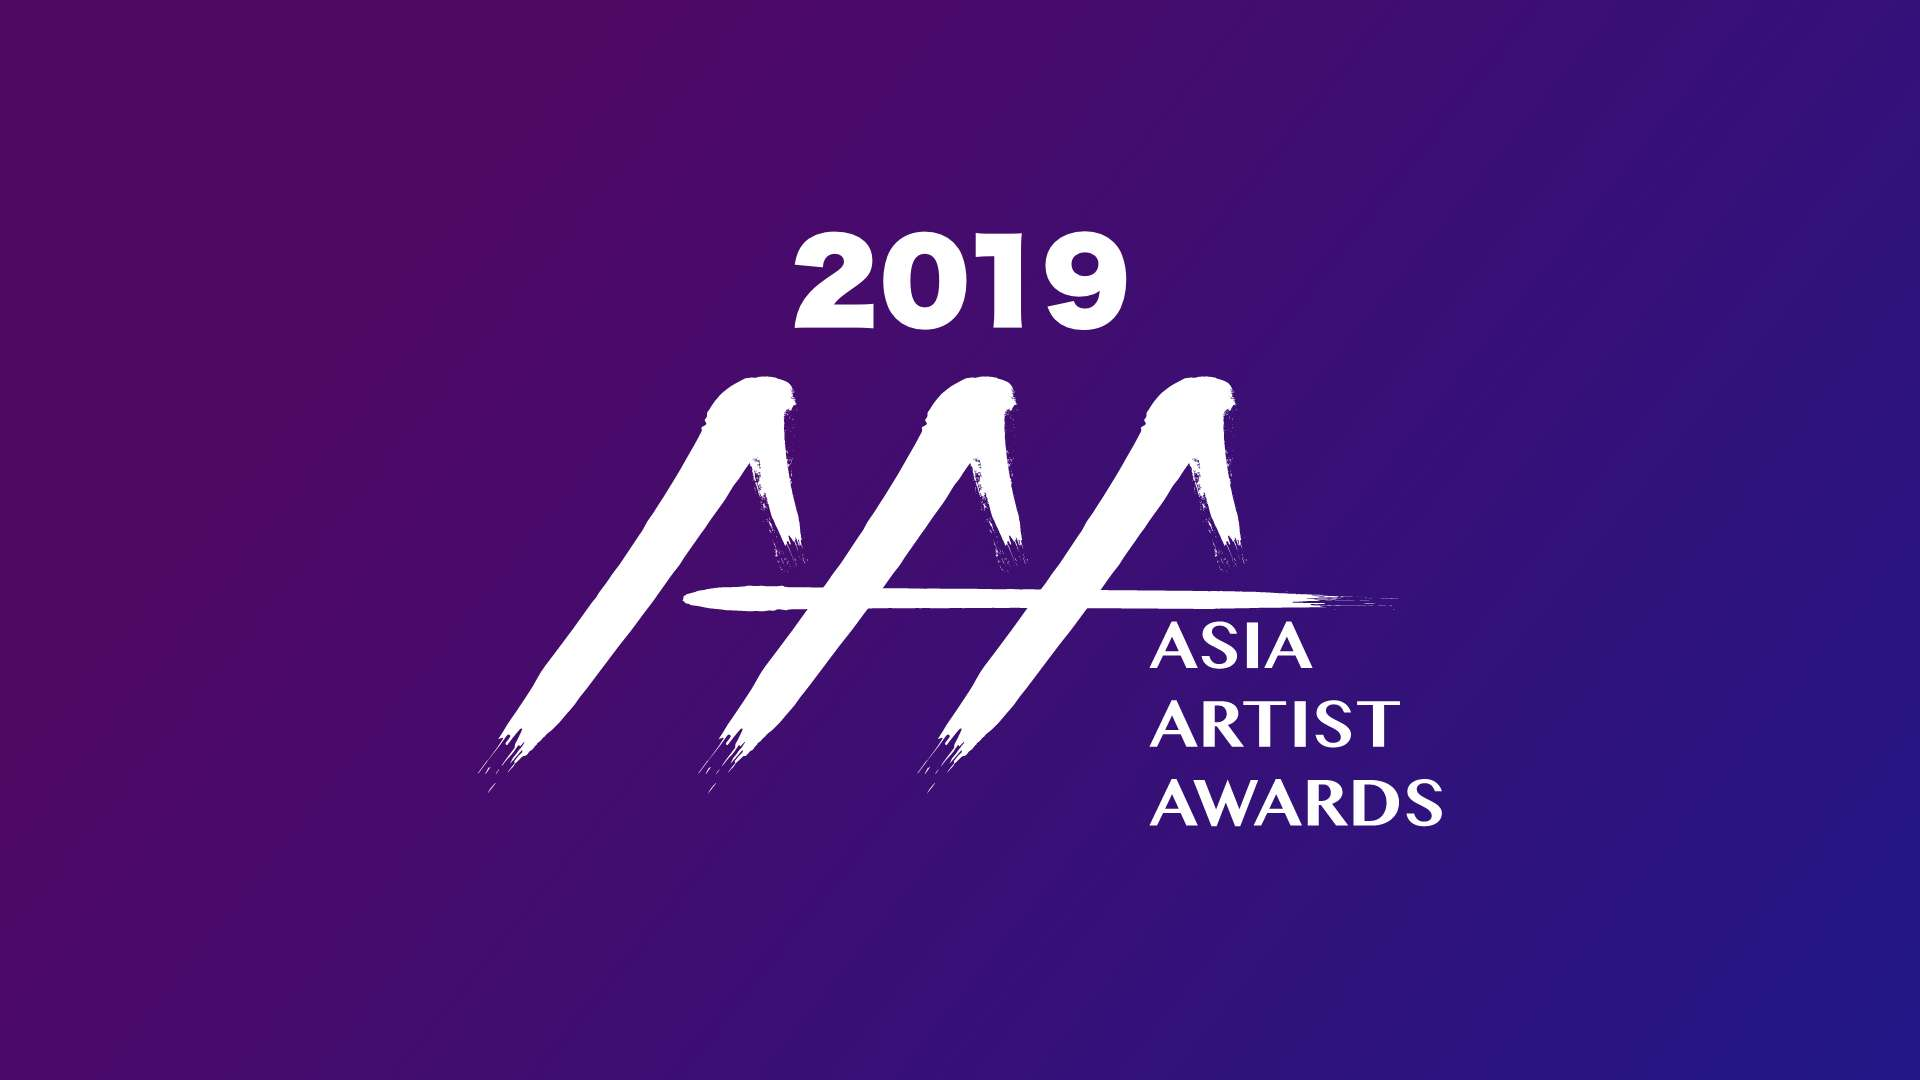 2019 ASIA ARTIST AWARDS in Vietnam